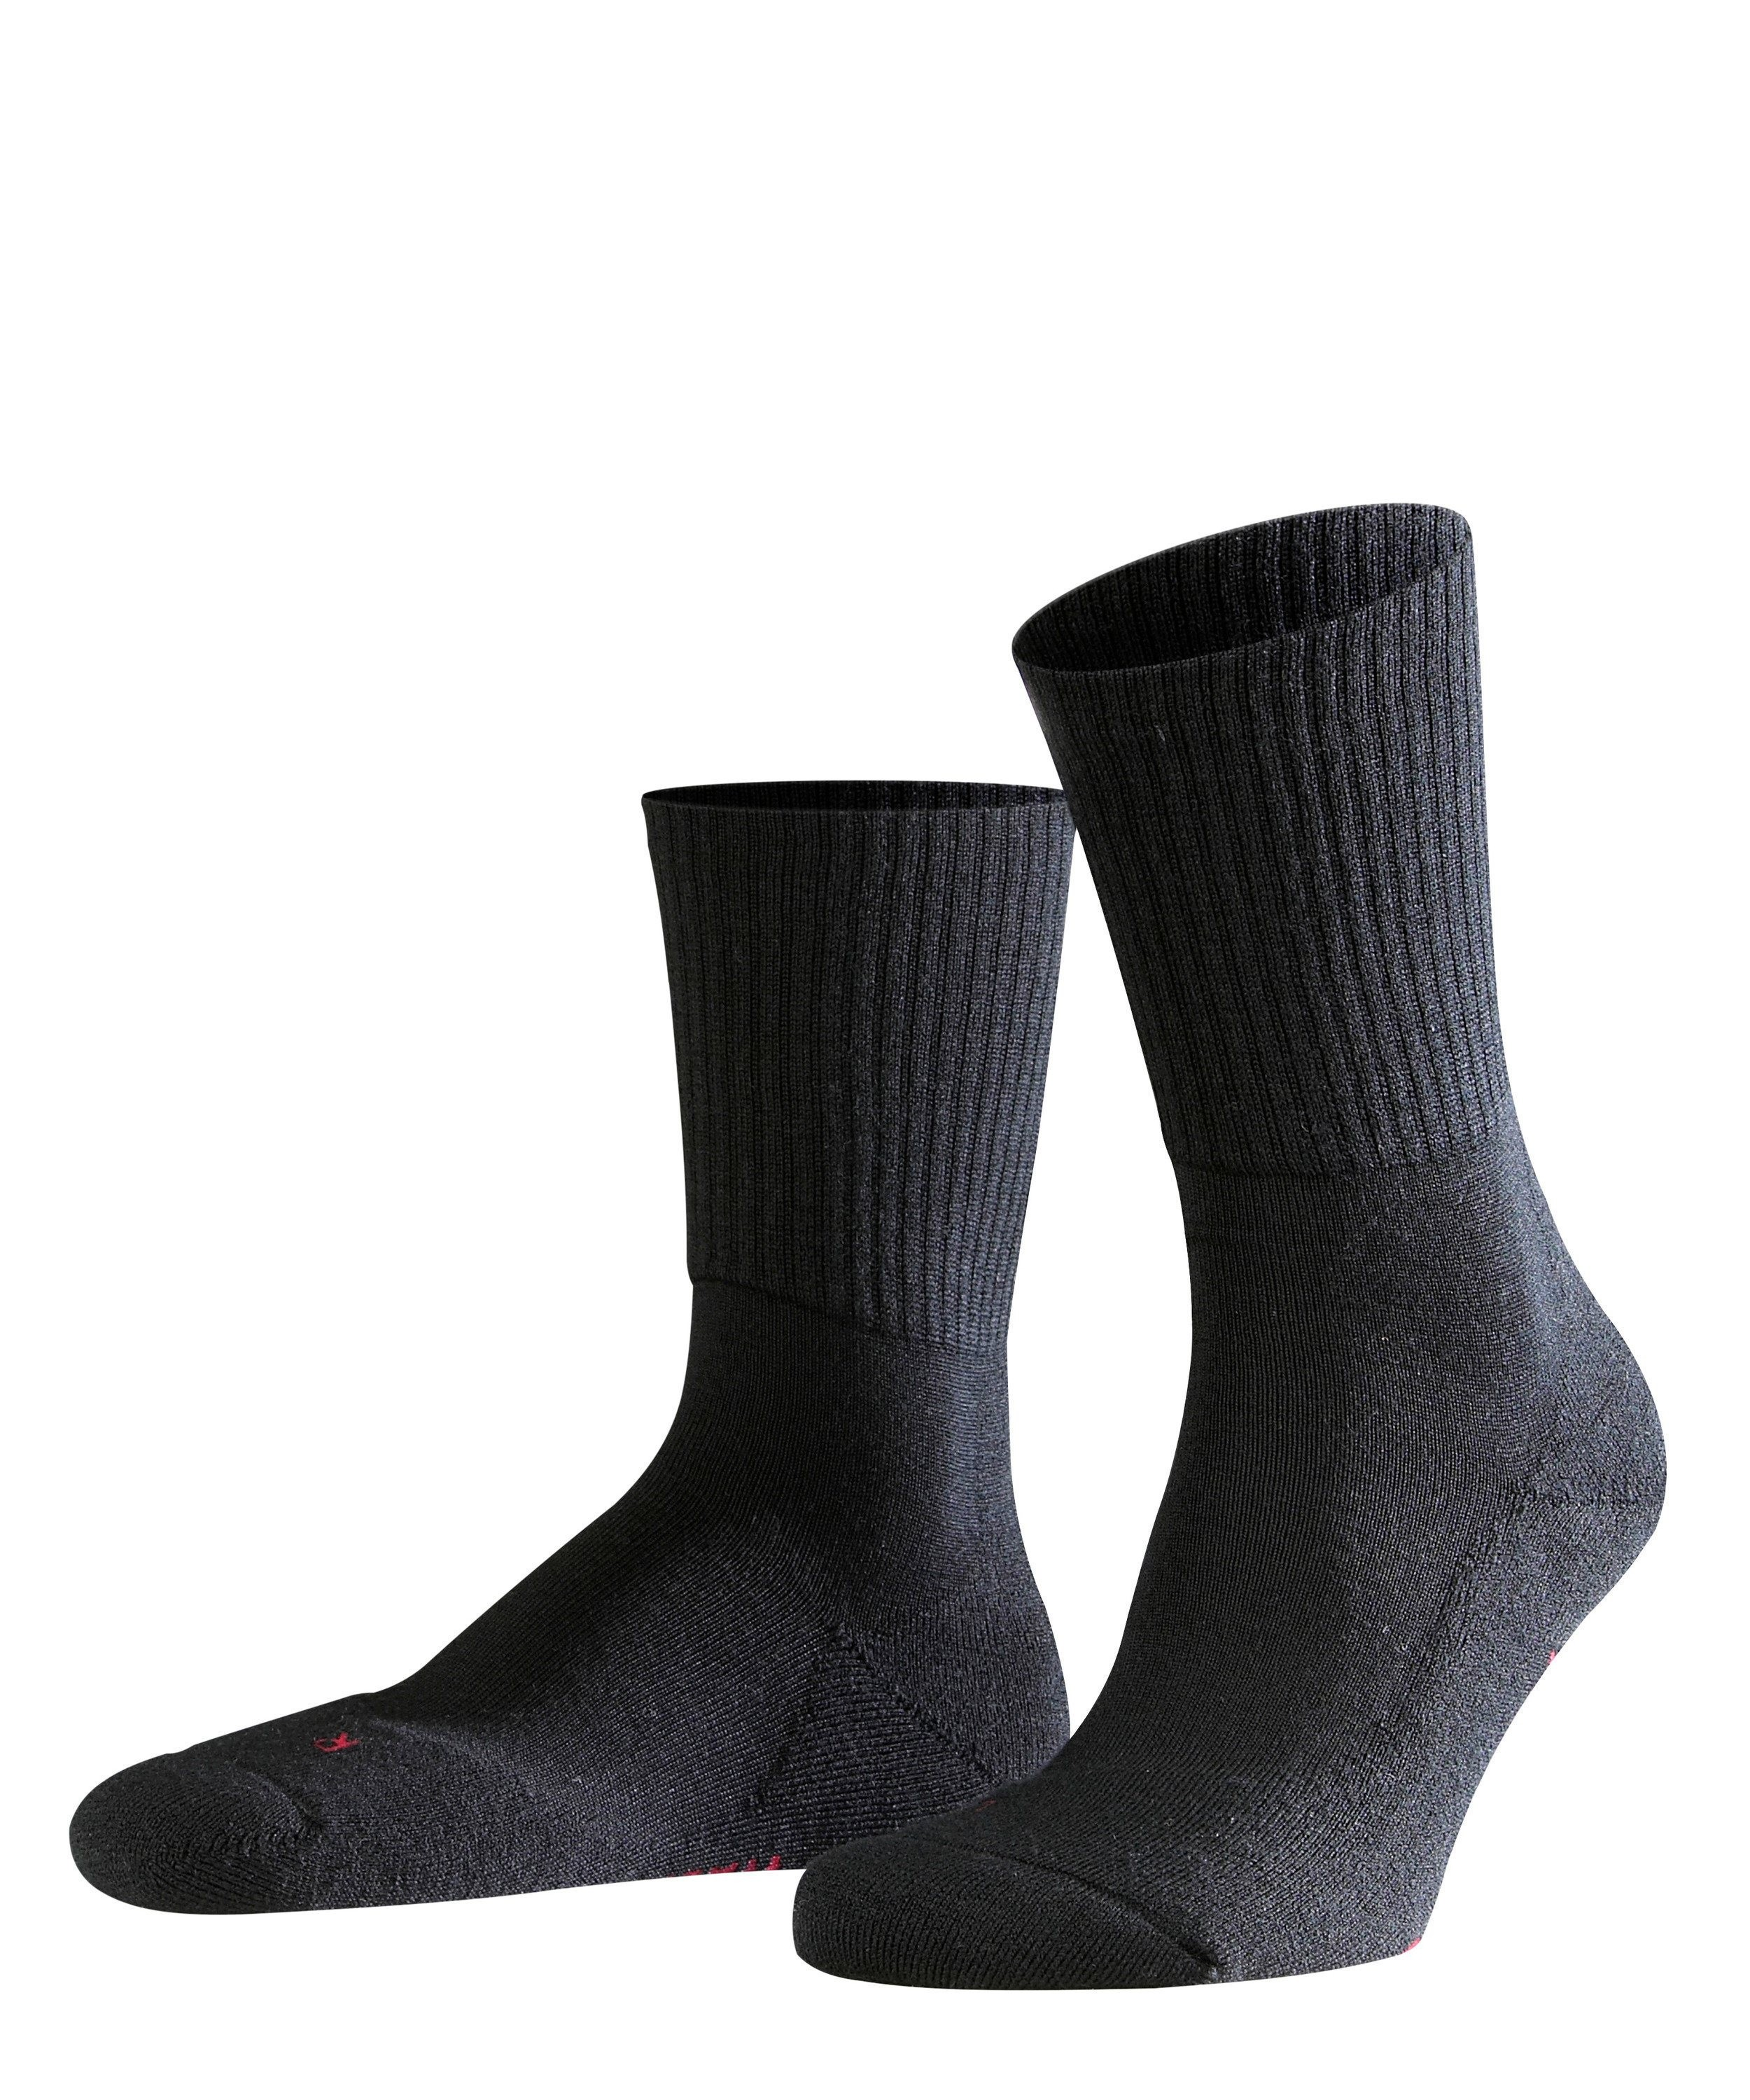 Chaussette de sport Unisexe - 66% Laine - Falke Men Walkie Light 16486 Noir 3000